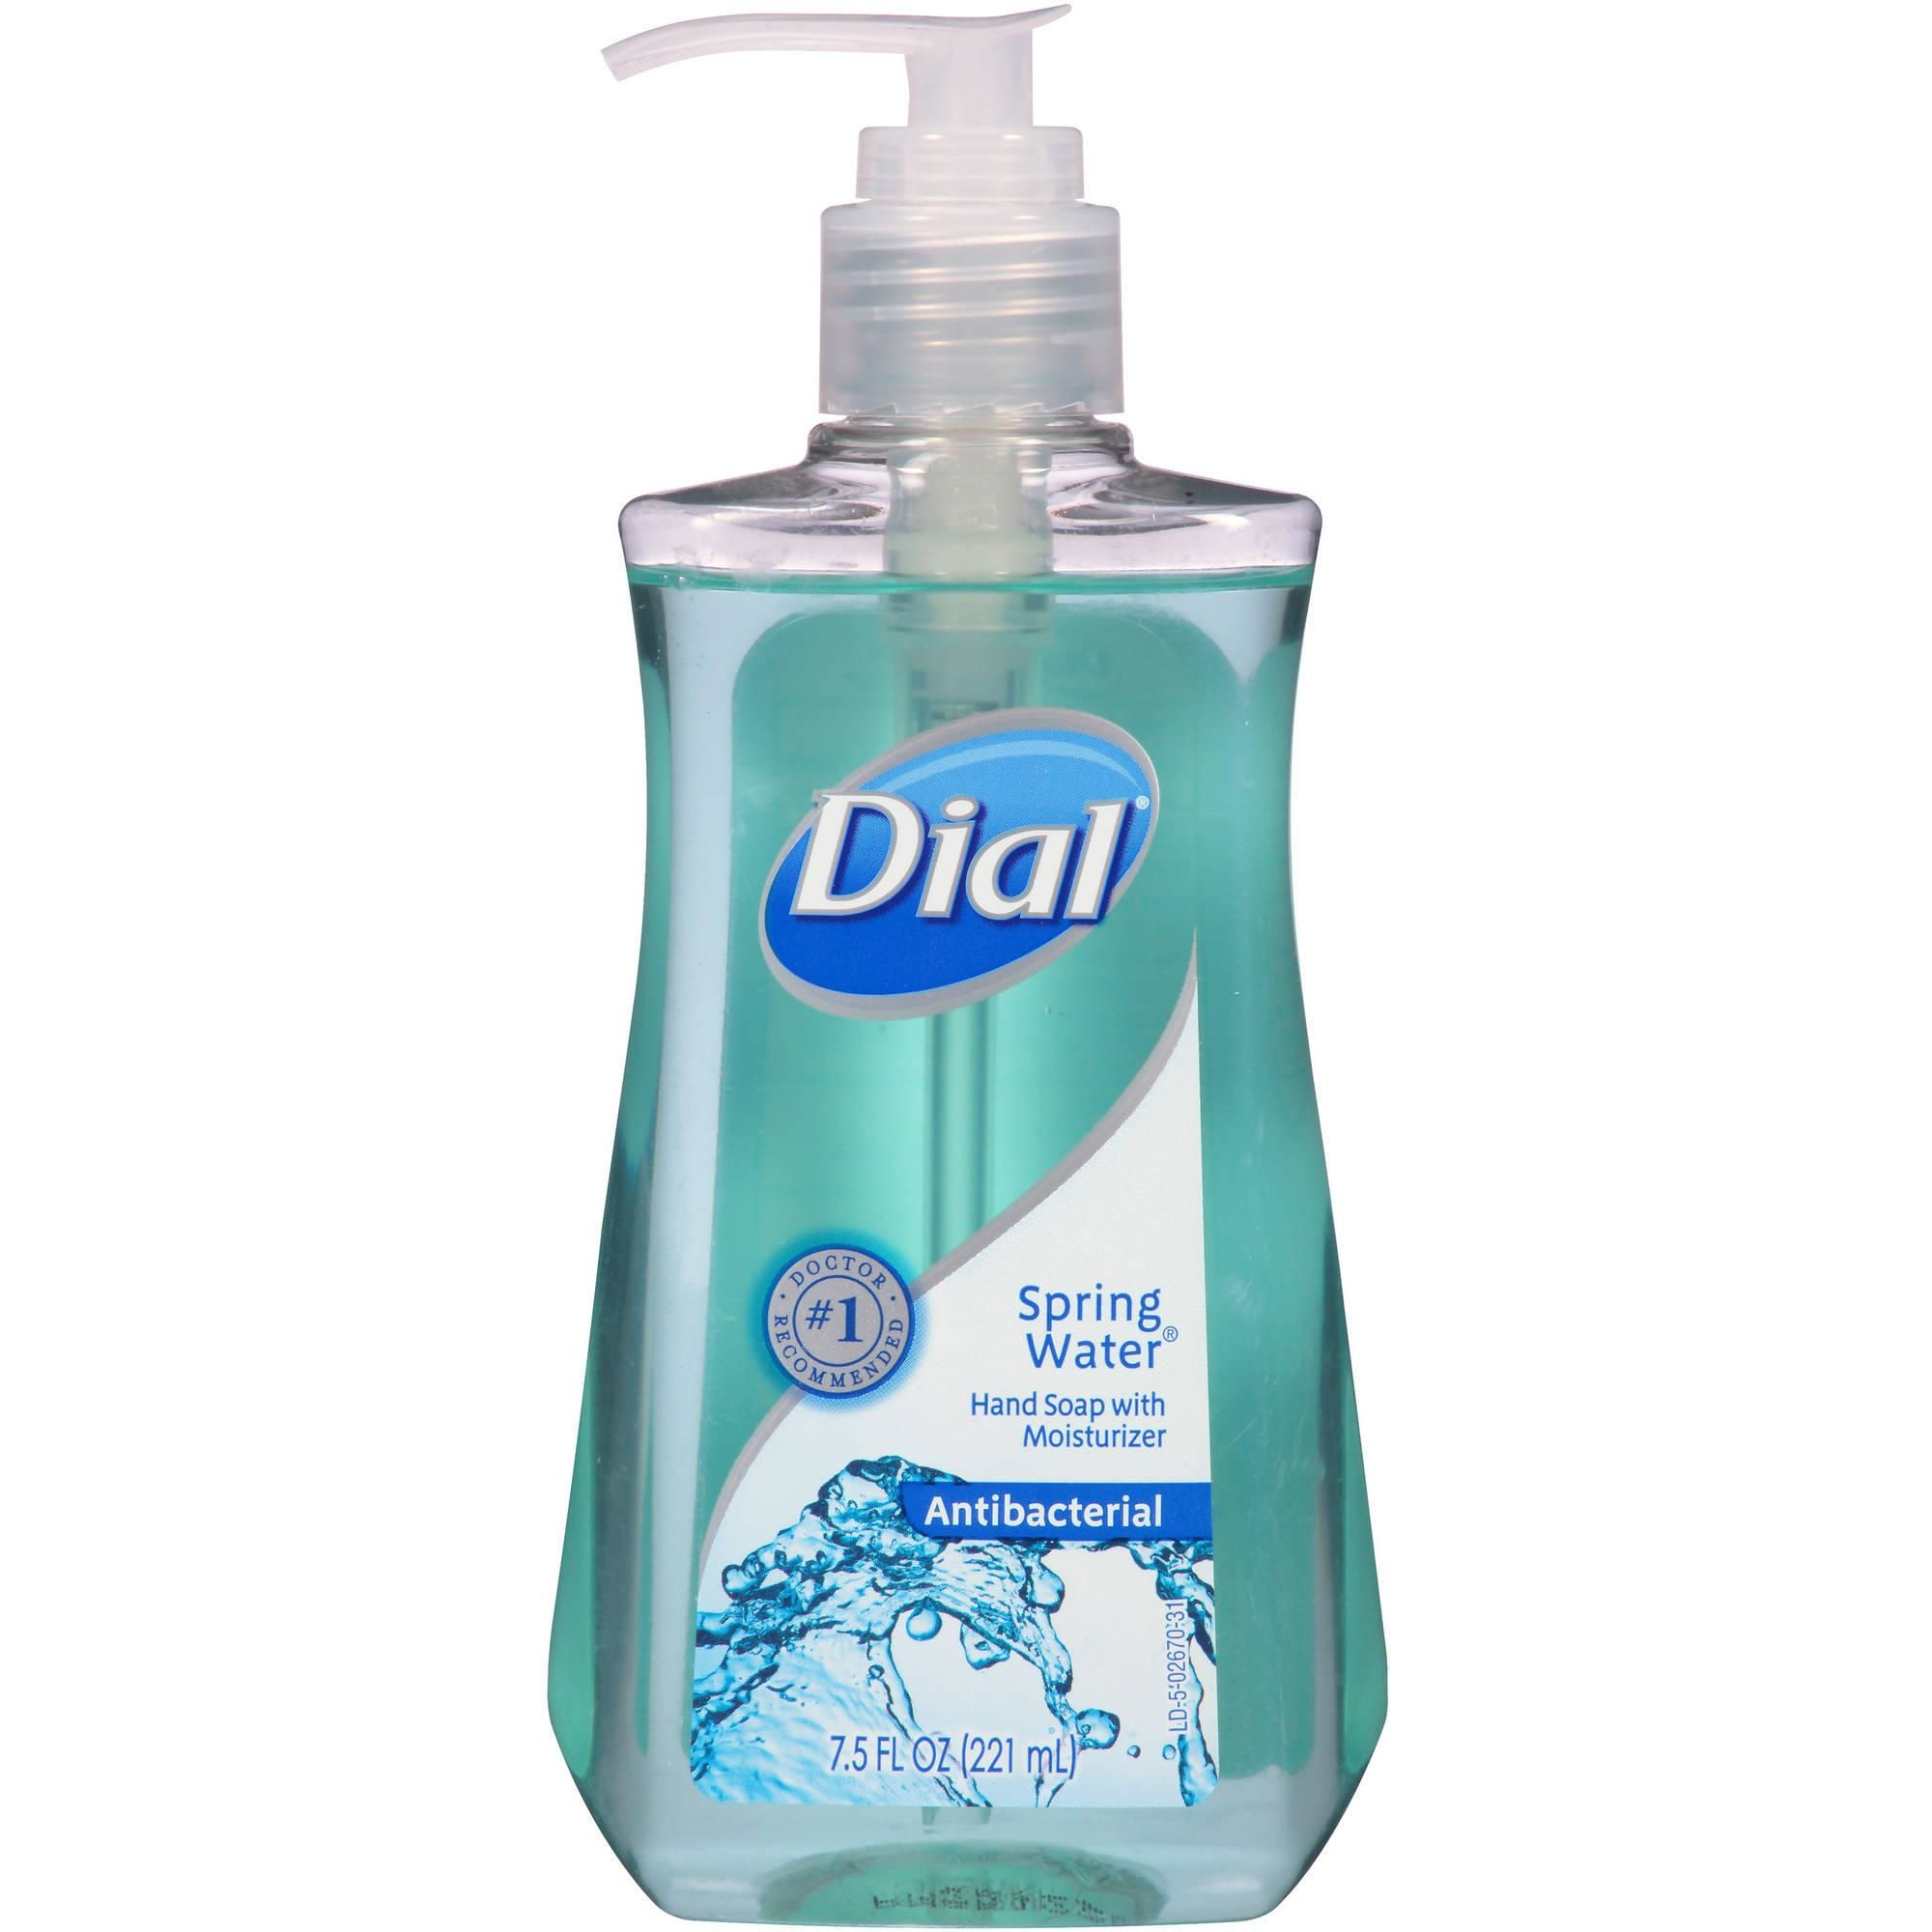 photo relating to Dial Soap Printable Coupon known as Dial hand cleaning soap coupon codes 2018 / Terrific discounts upon bucket hats